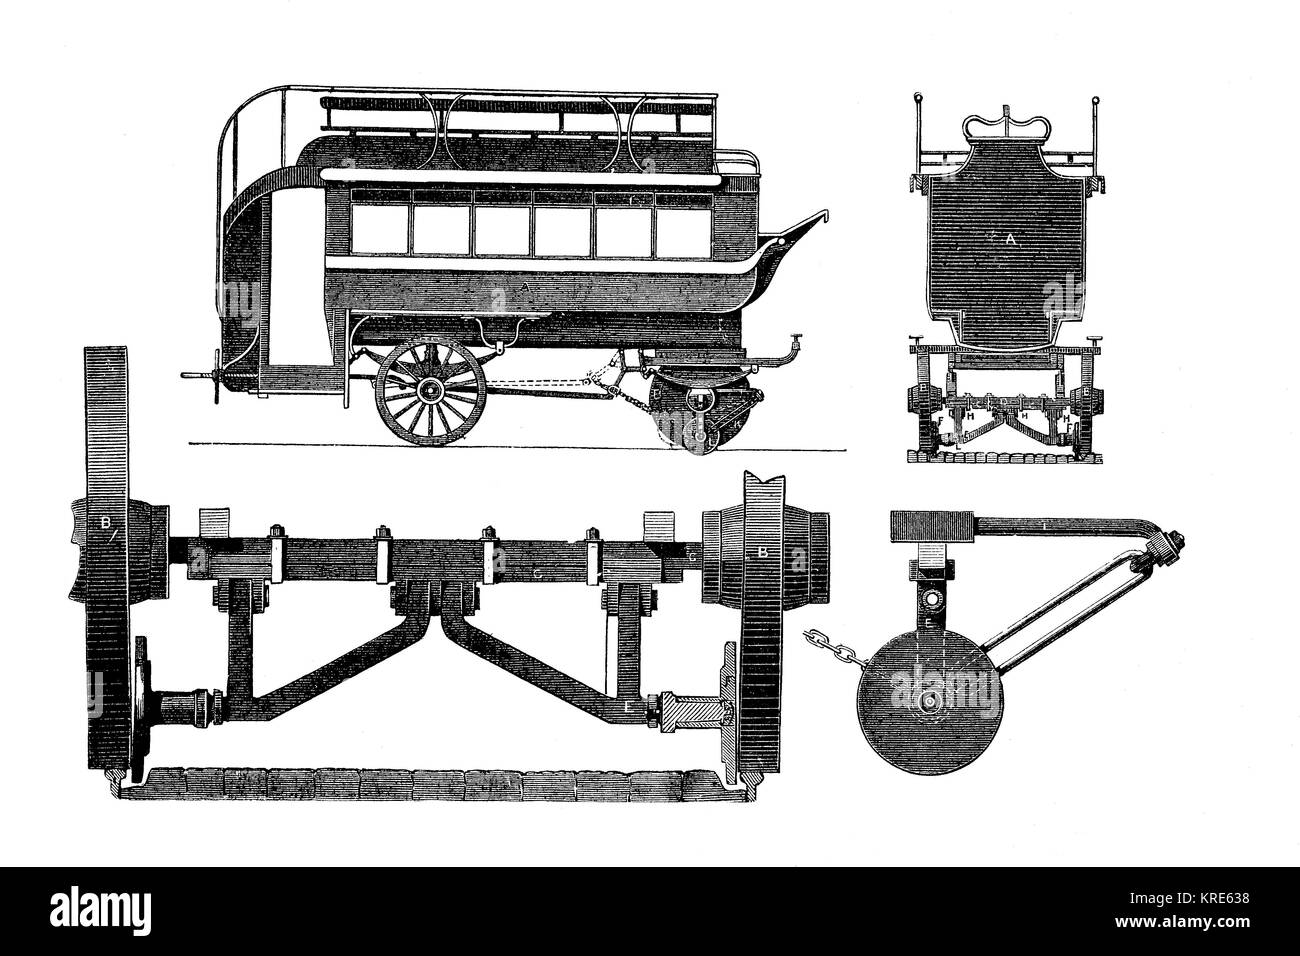 Various views of a Border wagon, a bus for rails and road, engineering, industrial product from the year 1880, digital - Stock Image